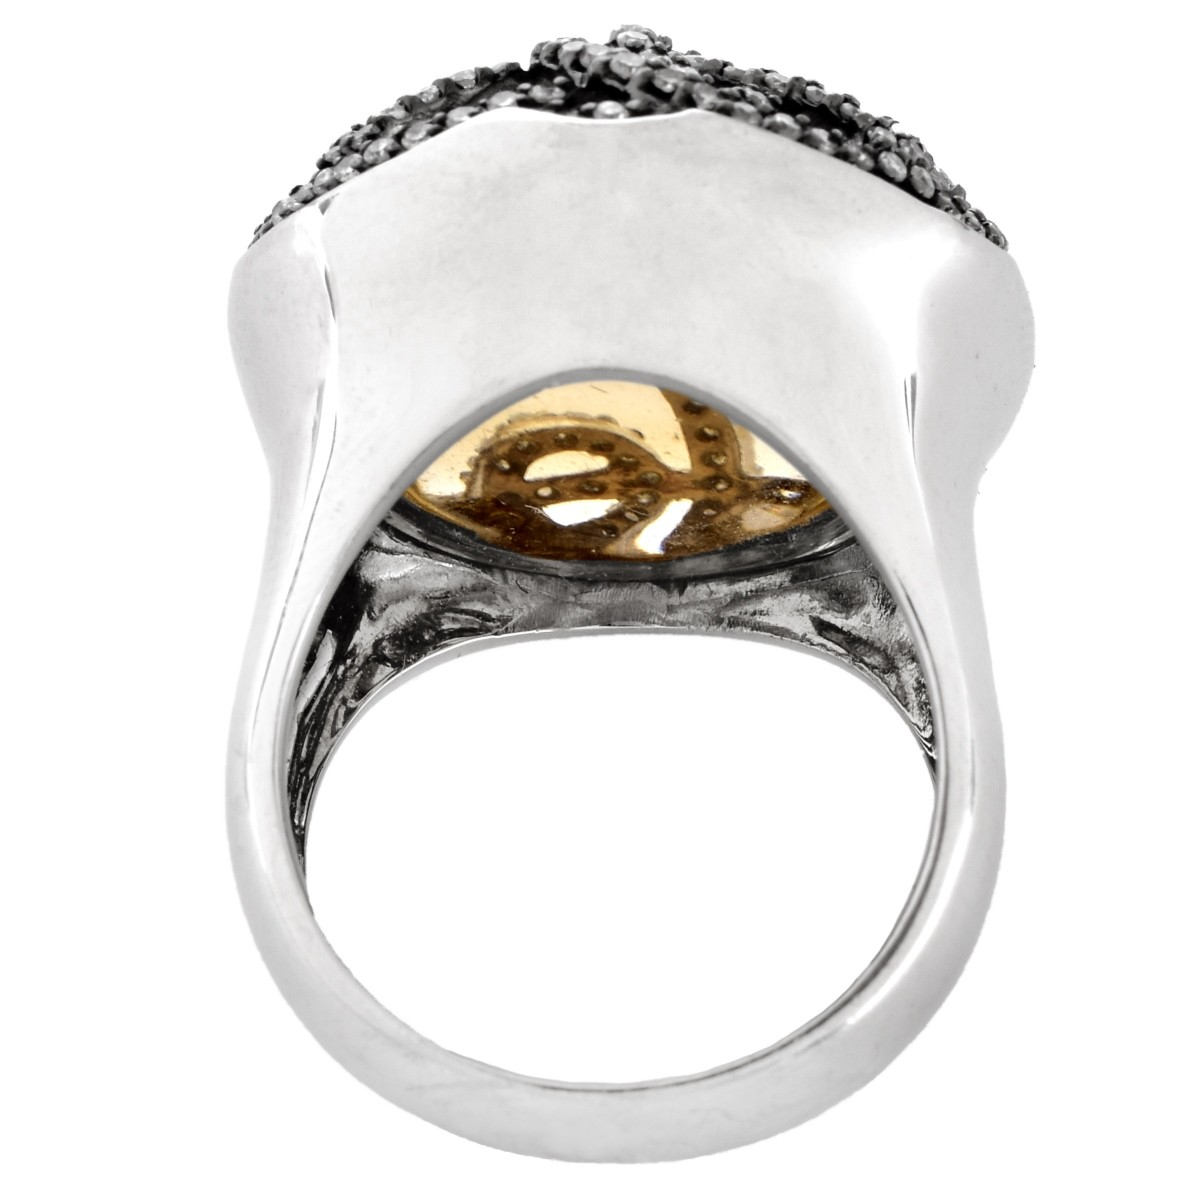 Nicole Miller Diamond and 14K Gold Ring